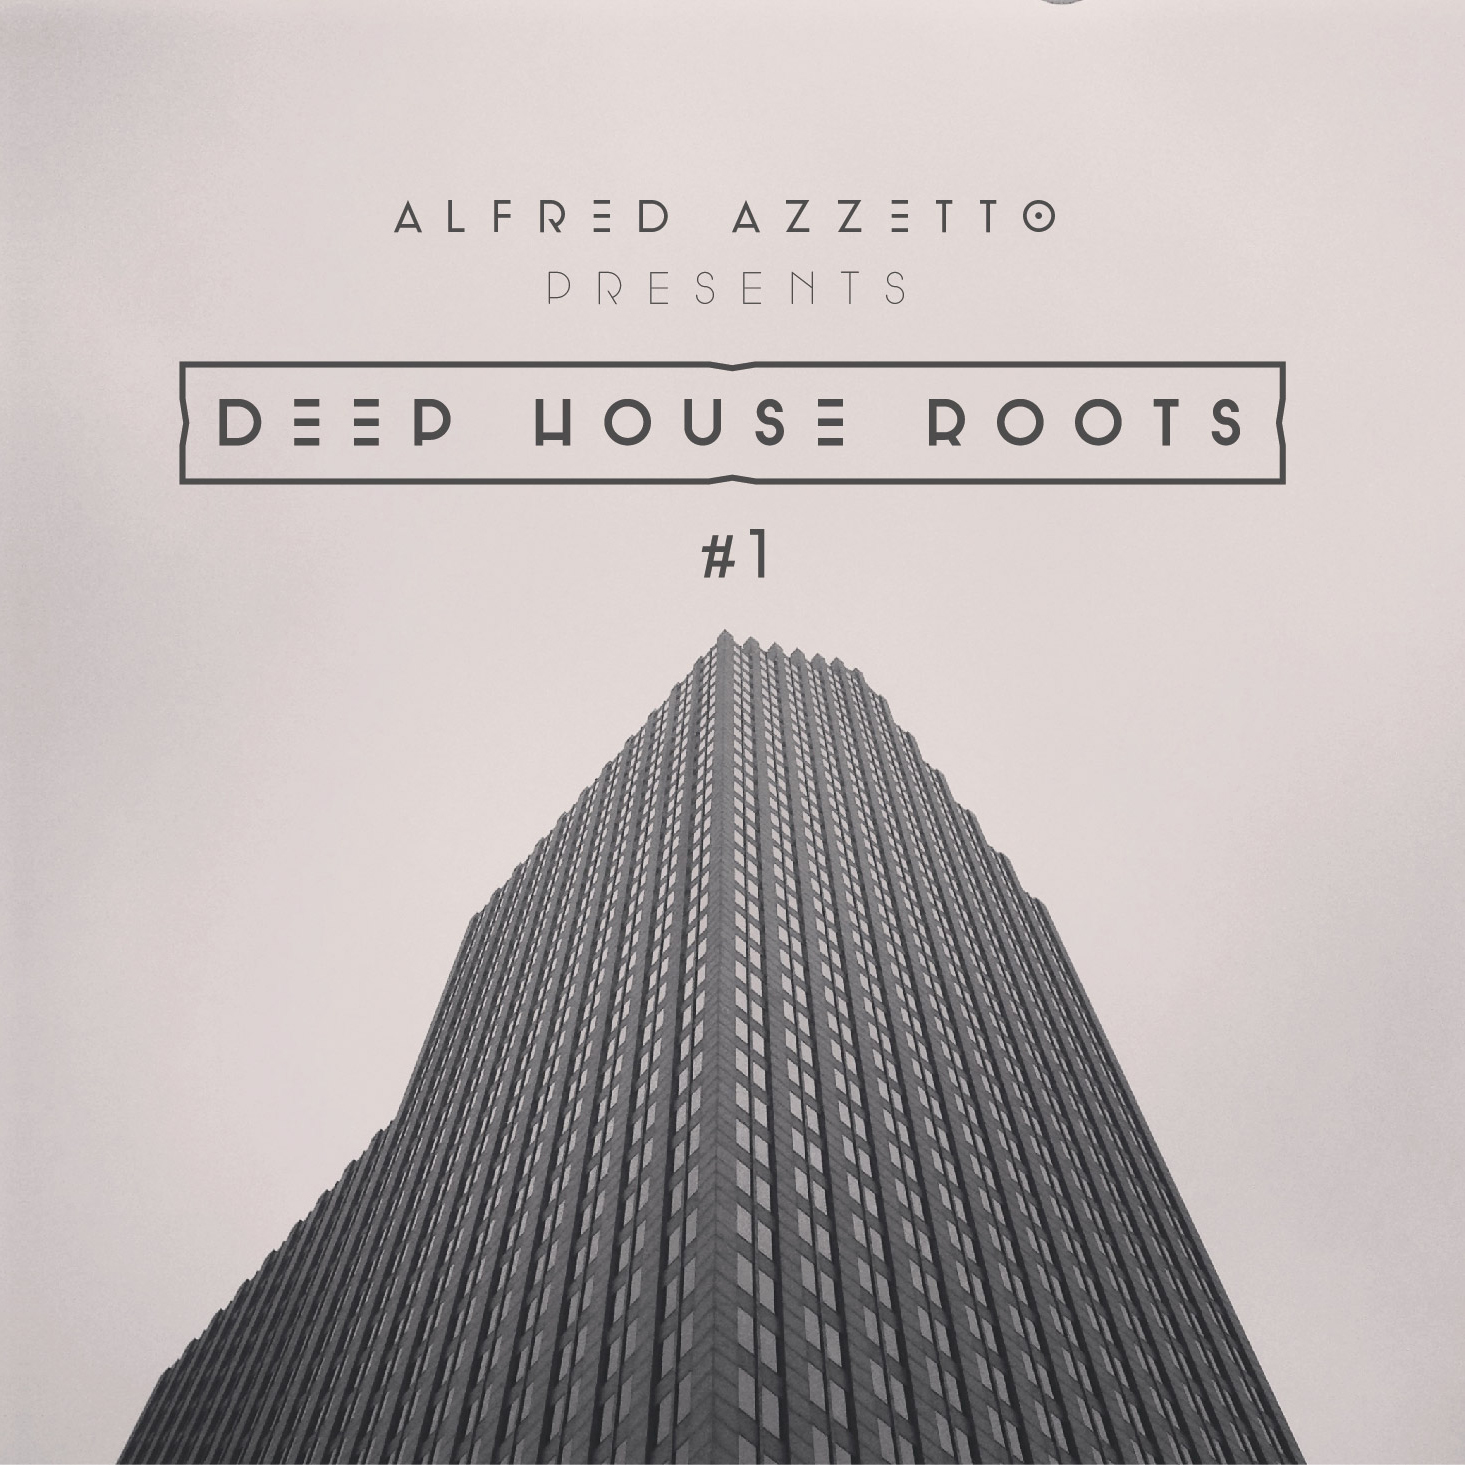 Alfred Azzetto presents Deep House Roots vol. 1